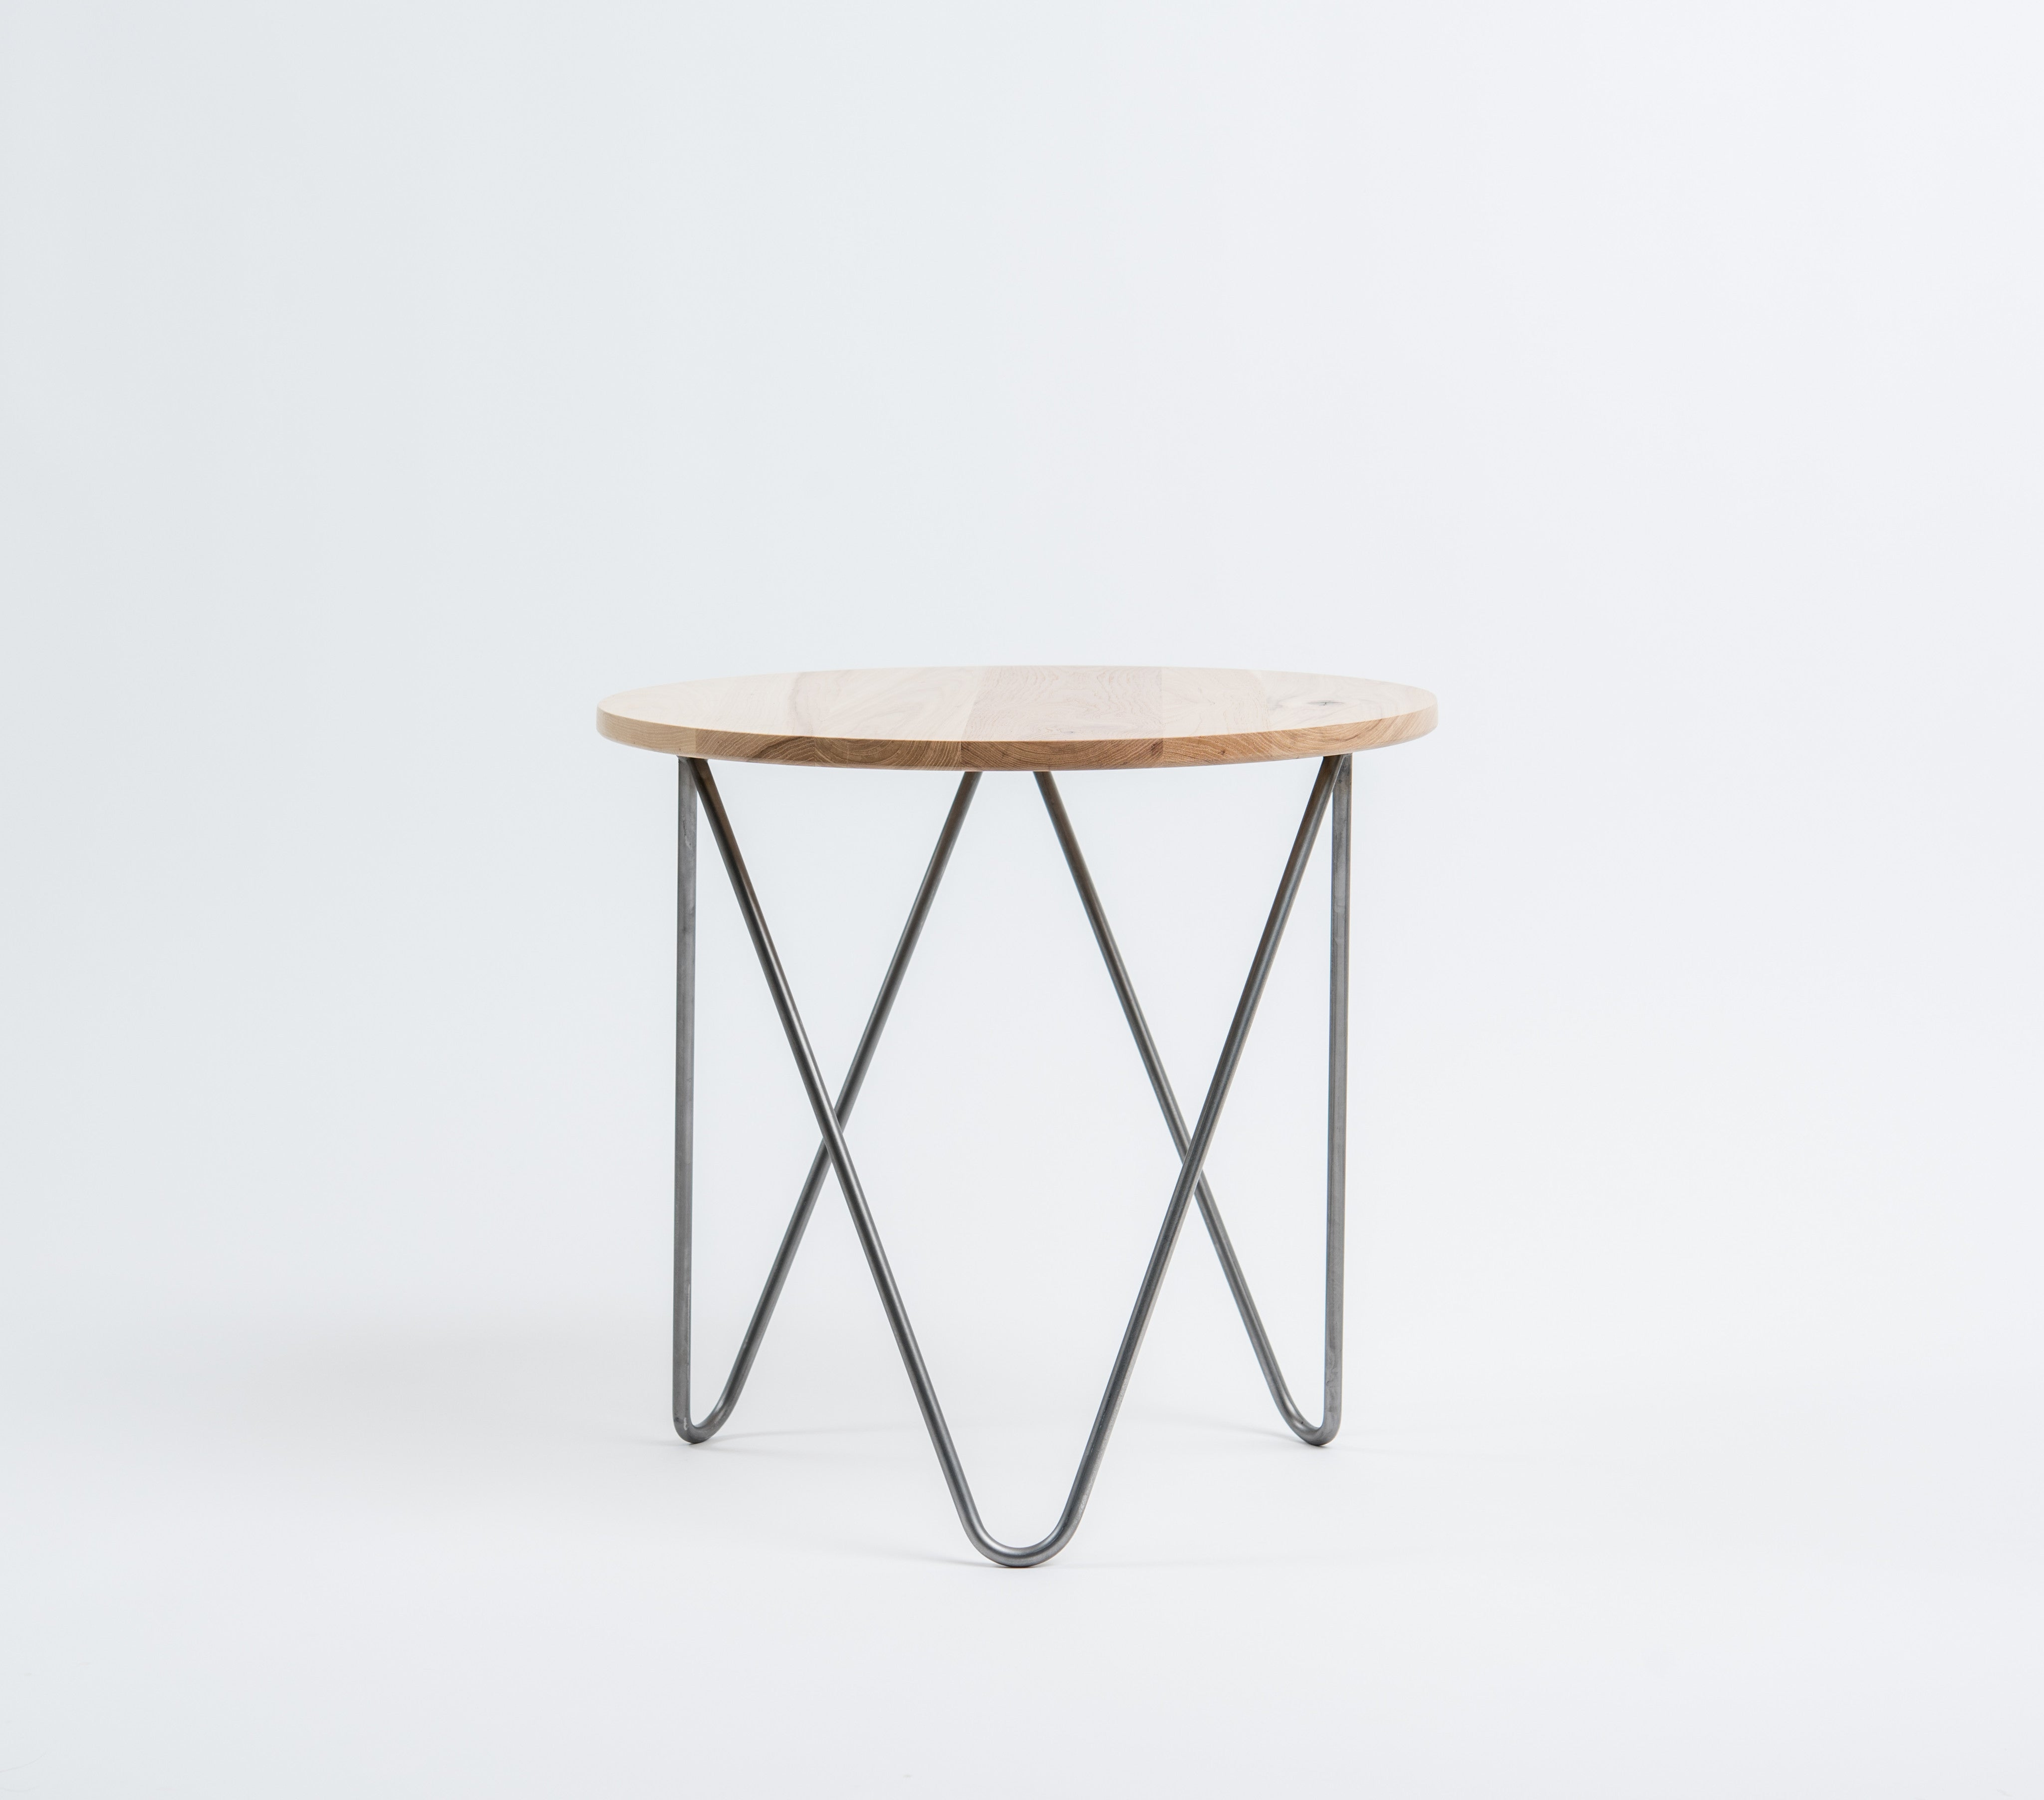 wooden teak wood e end tables duplex furniture coffee ethnicraft glass singapore room originals living collections square table in